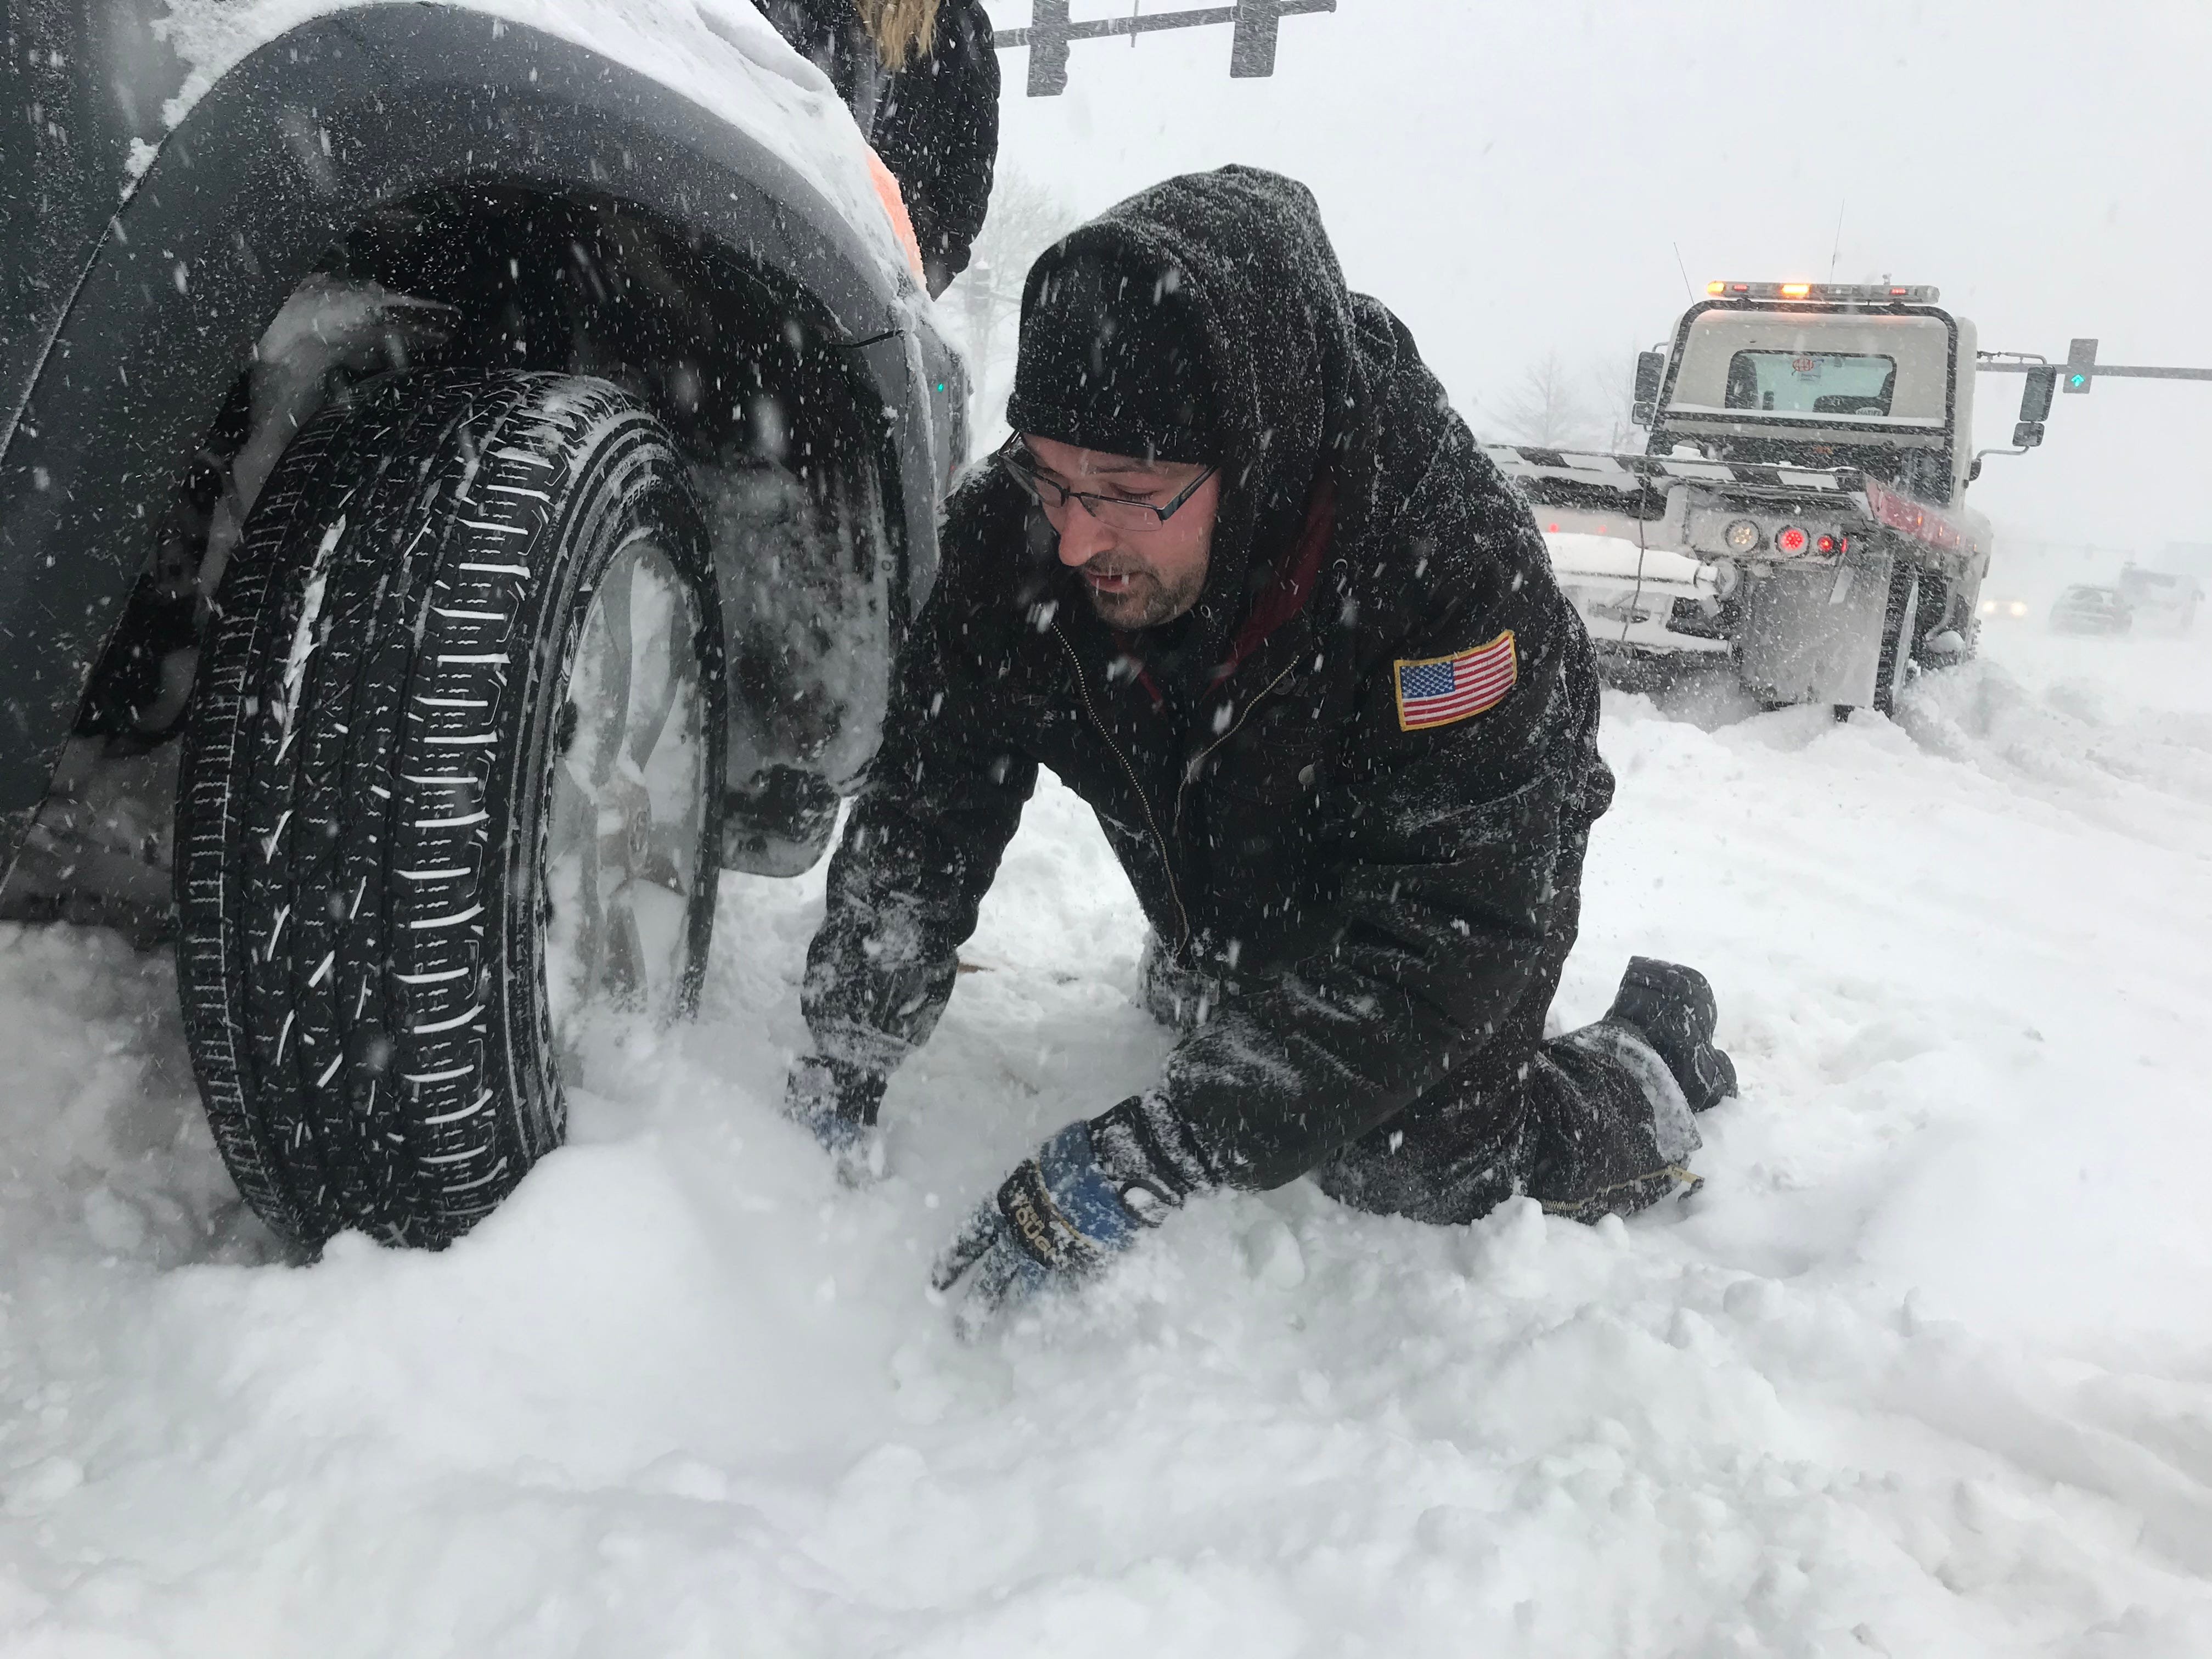 A Spillane's tow truck driver attaches a cable to a stuck vehicle on Main Street in Burlington, Vermont, after it got stuck on Sunday morning, Jan. 20, 2019.